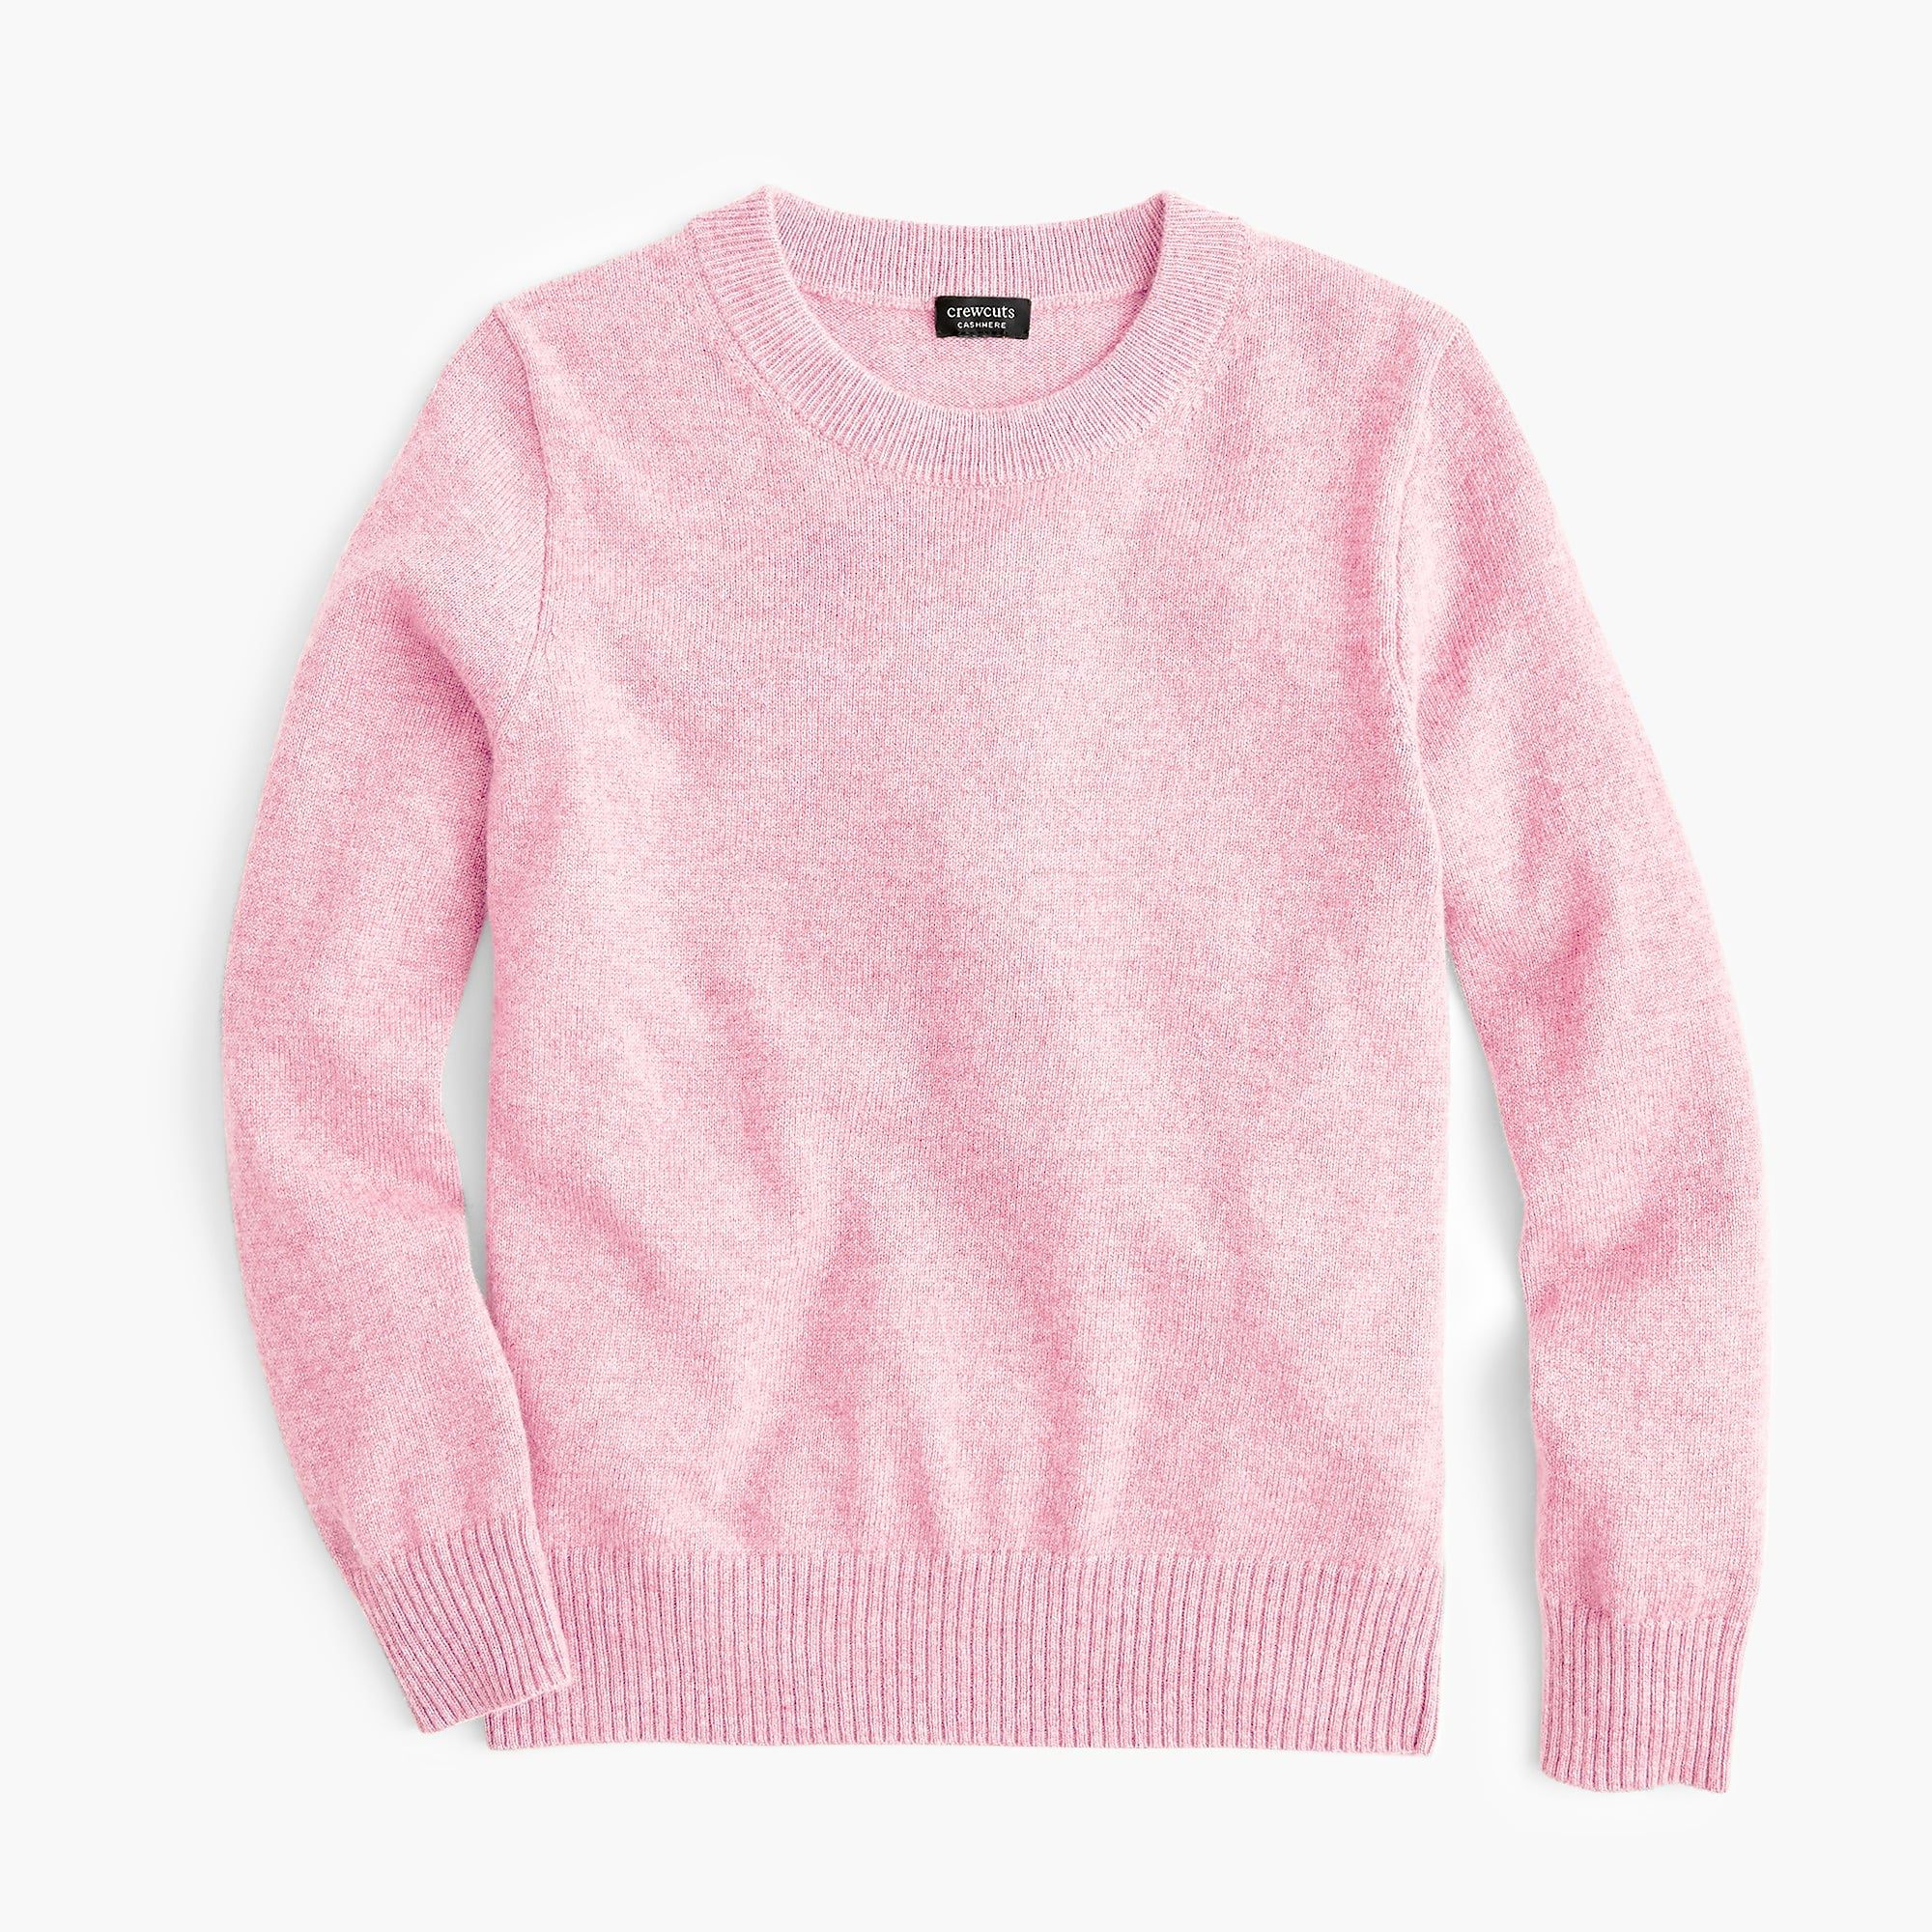 cc79252db Kids' cashmere crewneck sweater | Addie ❤ Brently | Boys sweaters ...